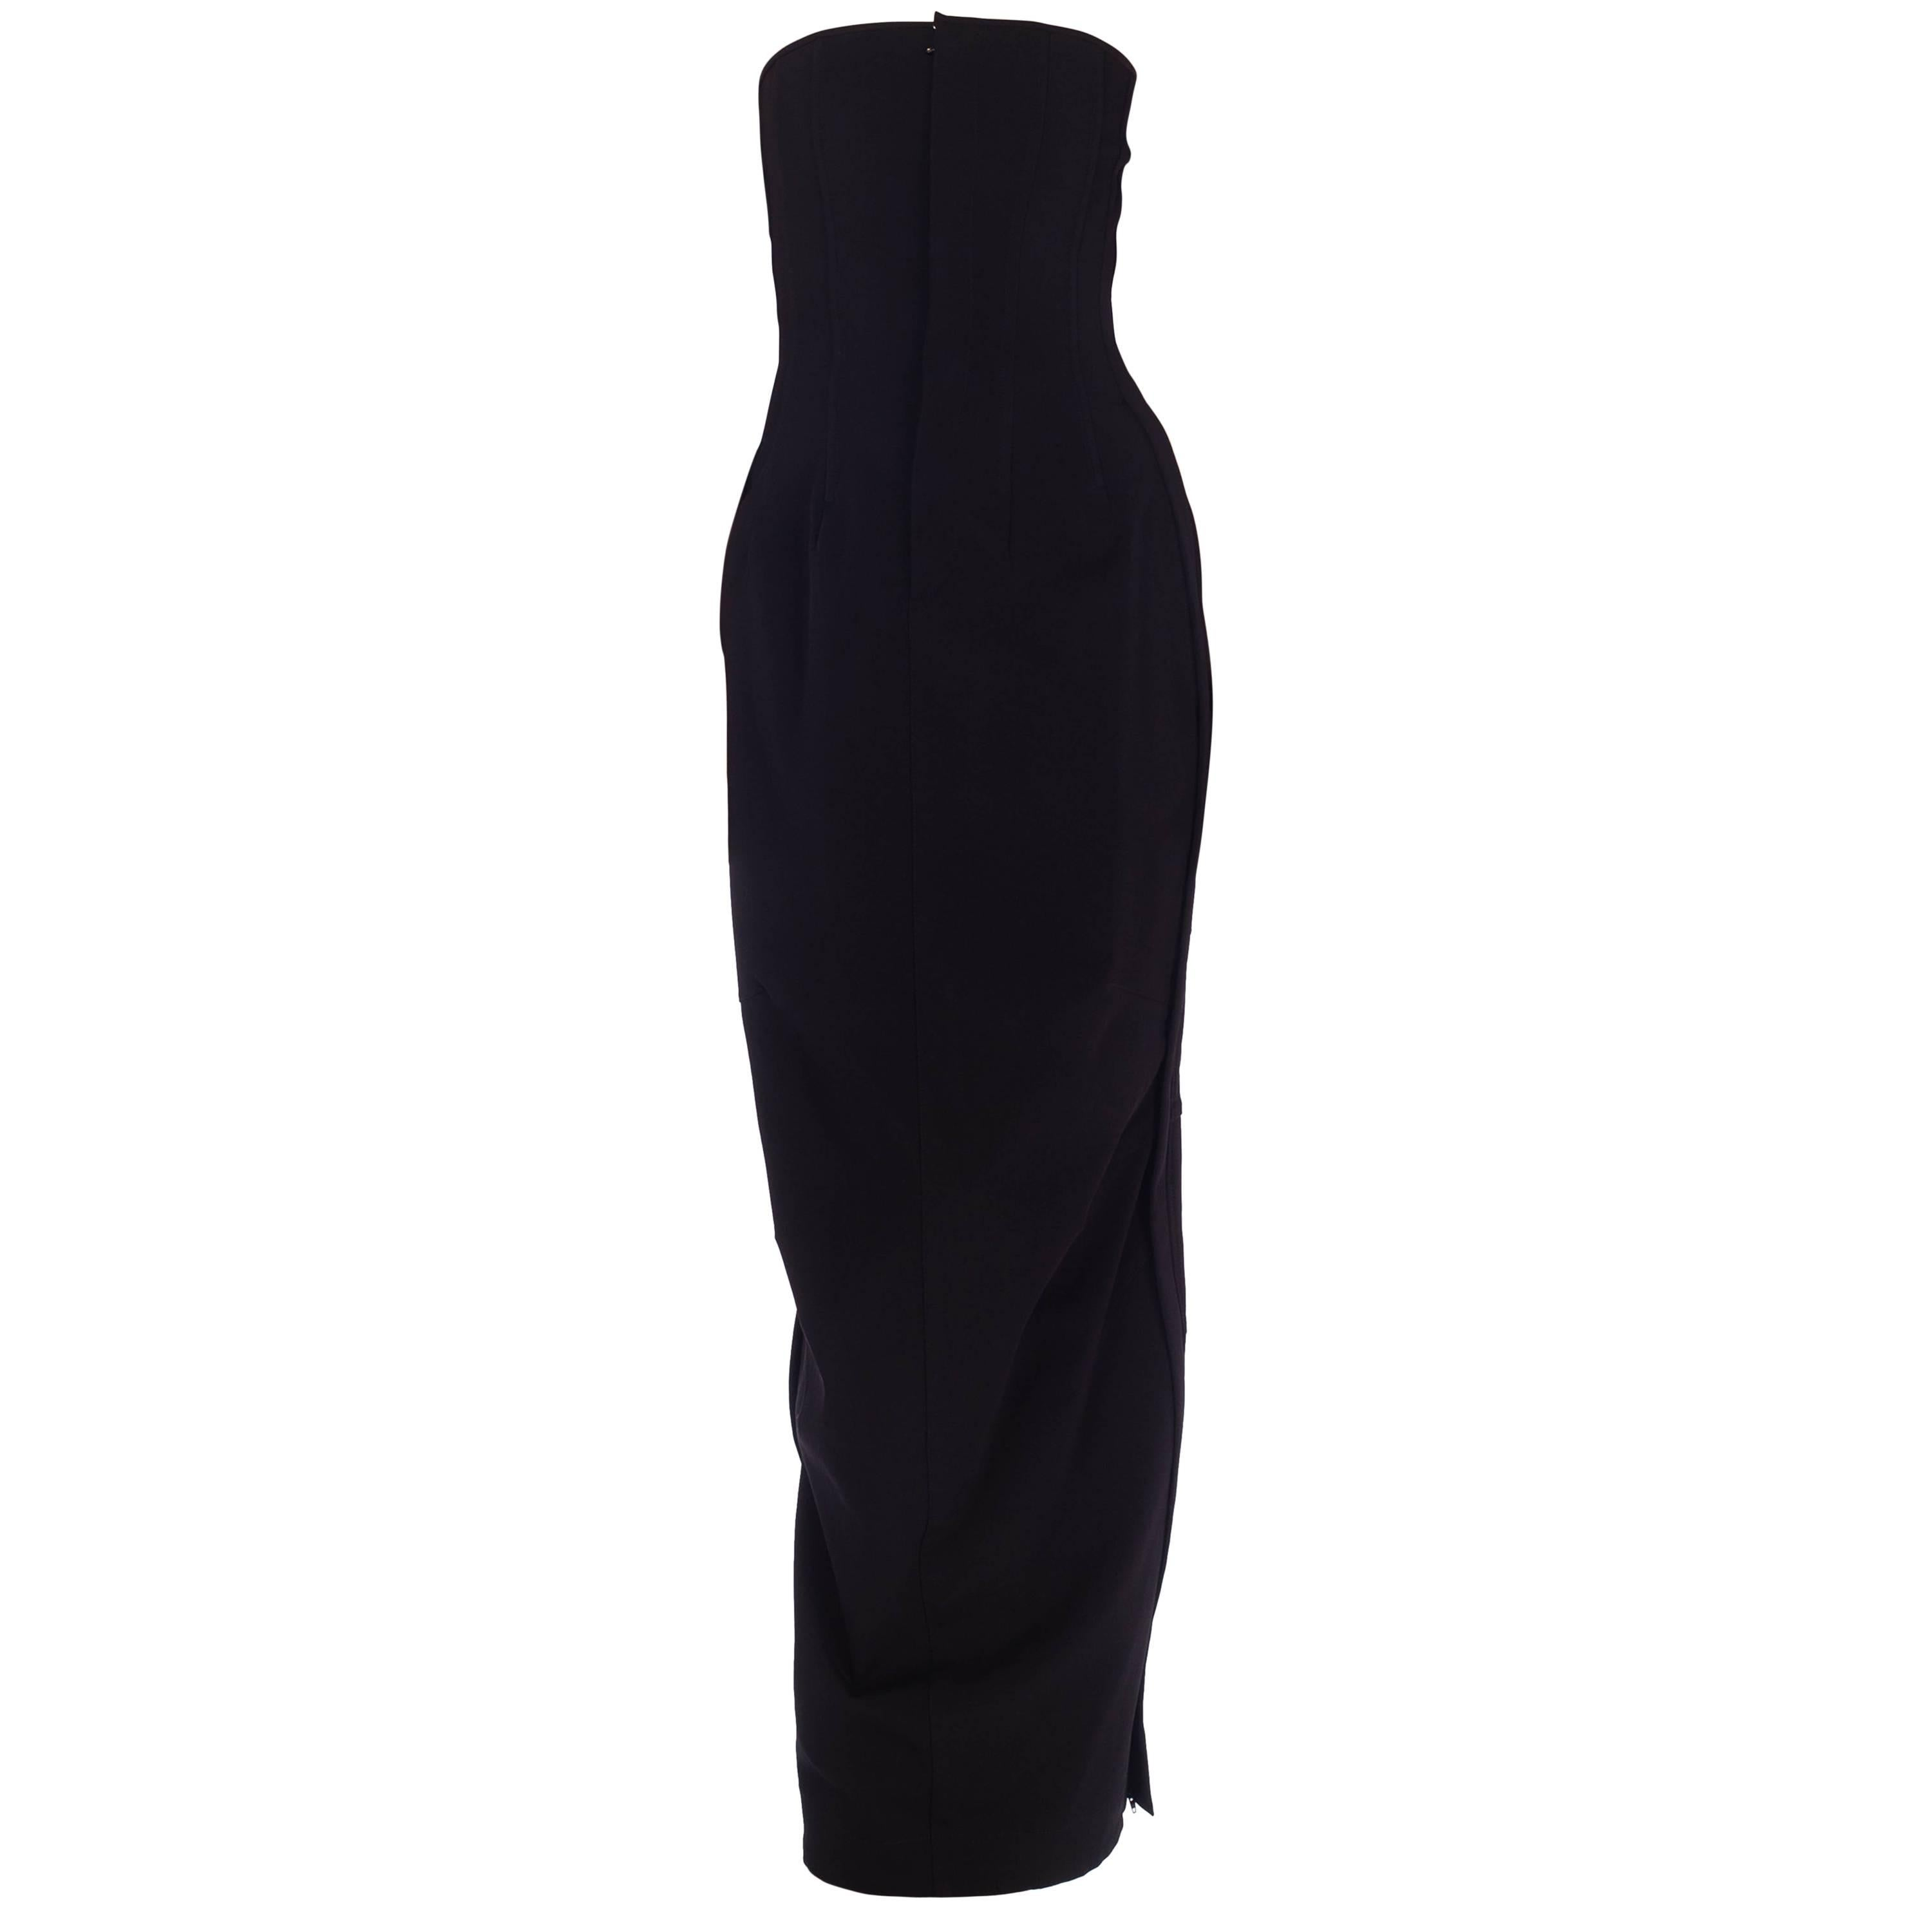 1990S DOLCE & GABBANA Black Poly Blend Stretch  Strapless Boned Corset Gown Wit